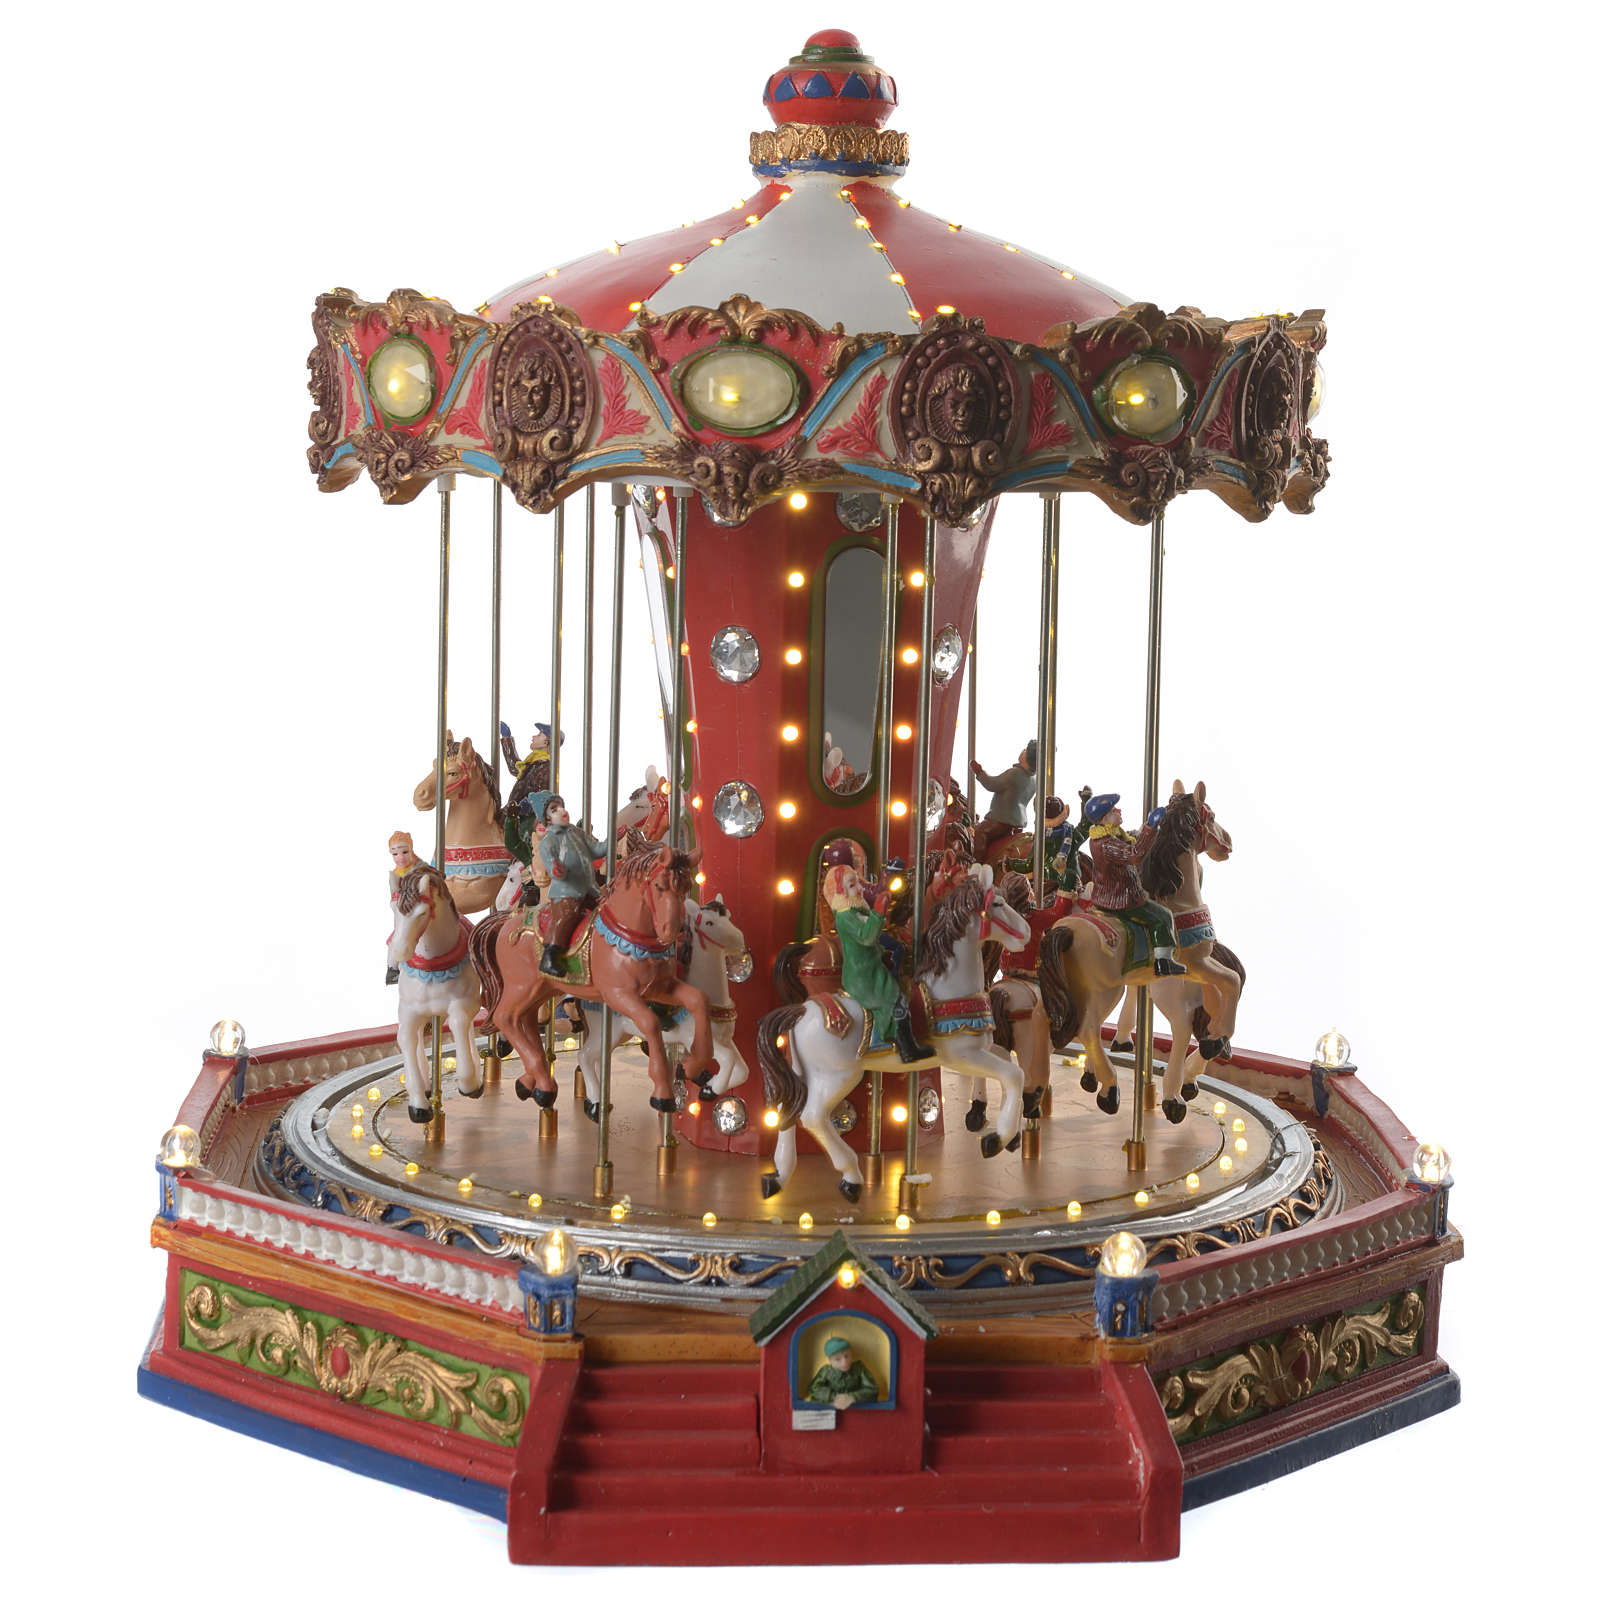 Moving Merry Go Round With Horses Christmas Scene With